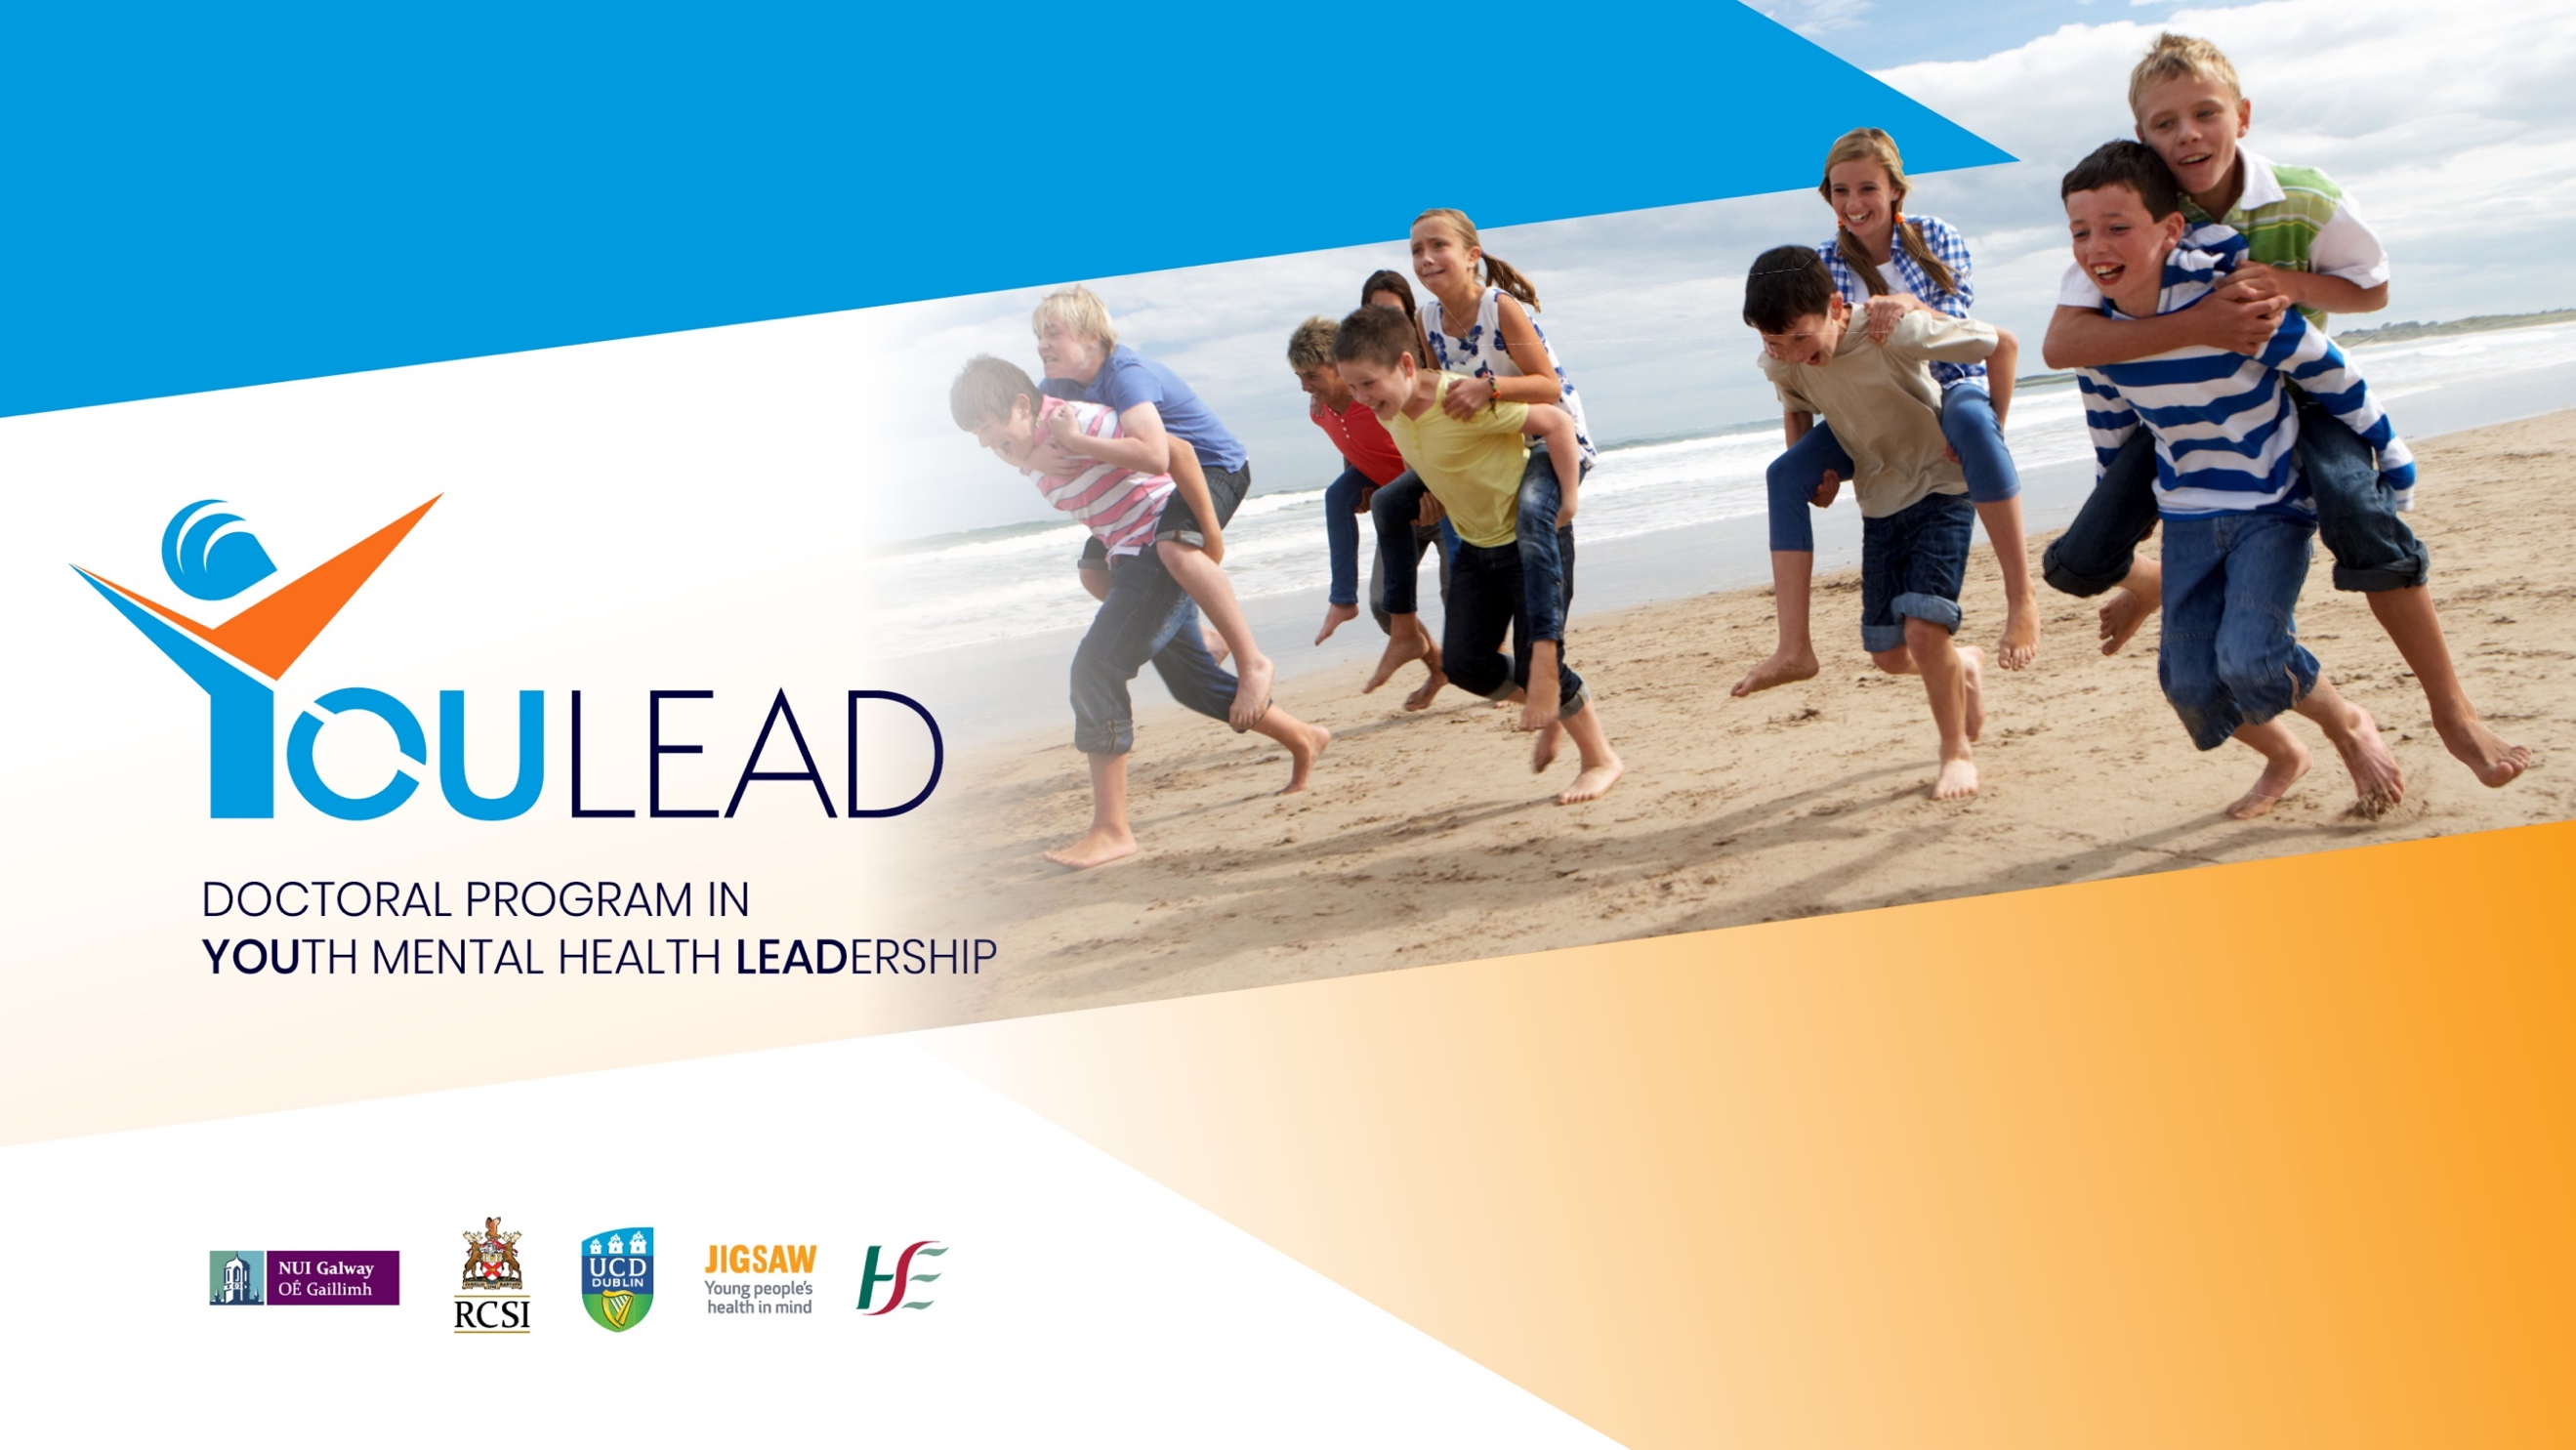 YouLead Header